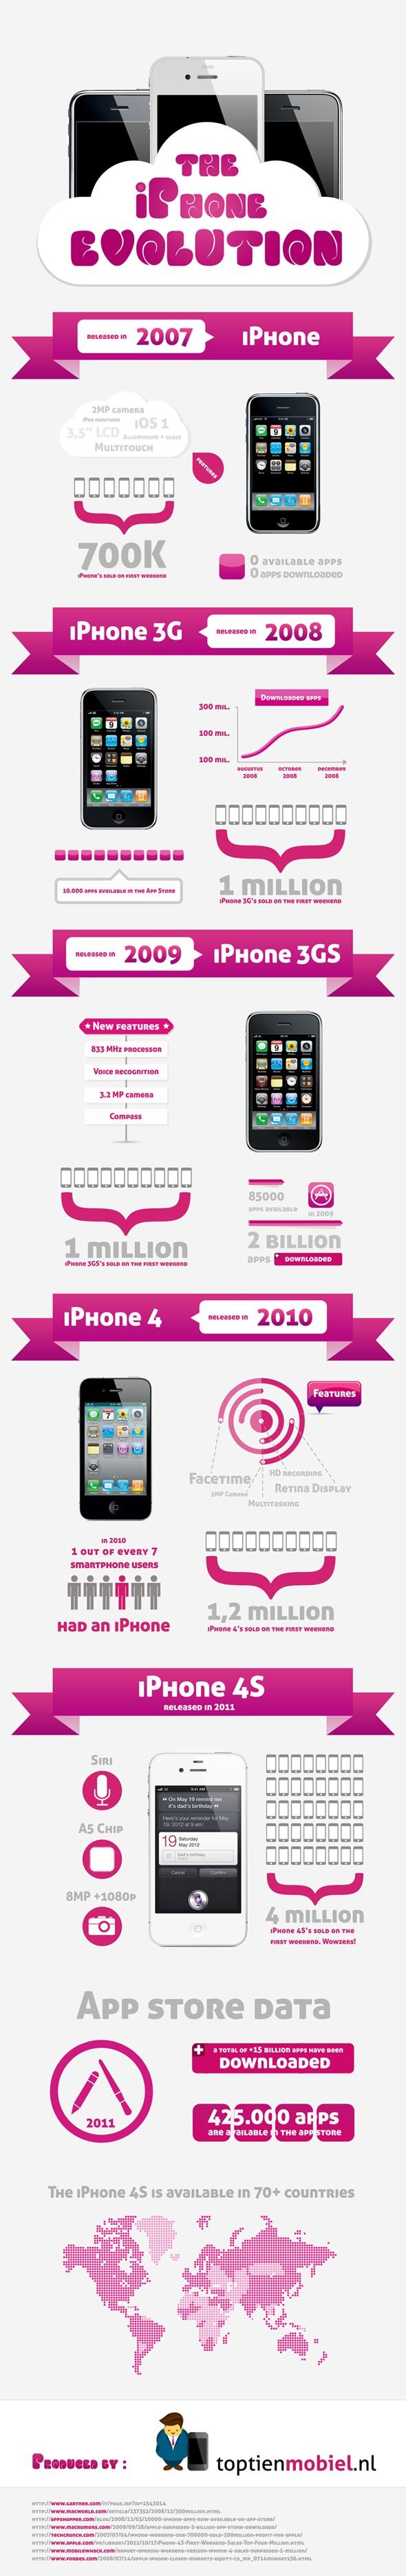 the-iphone-evolution-big